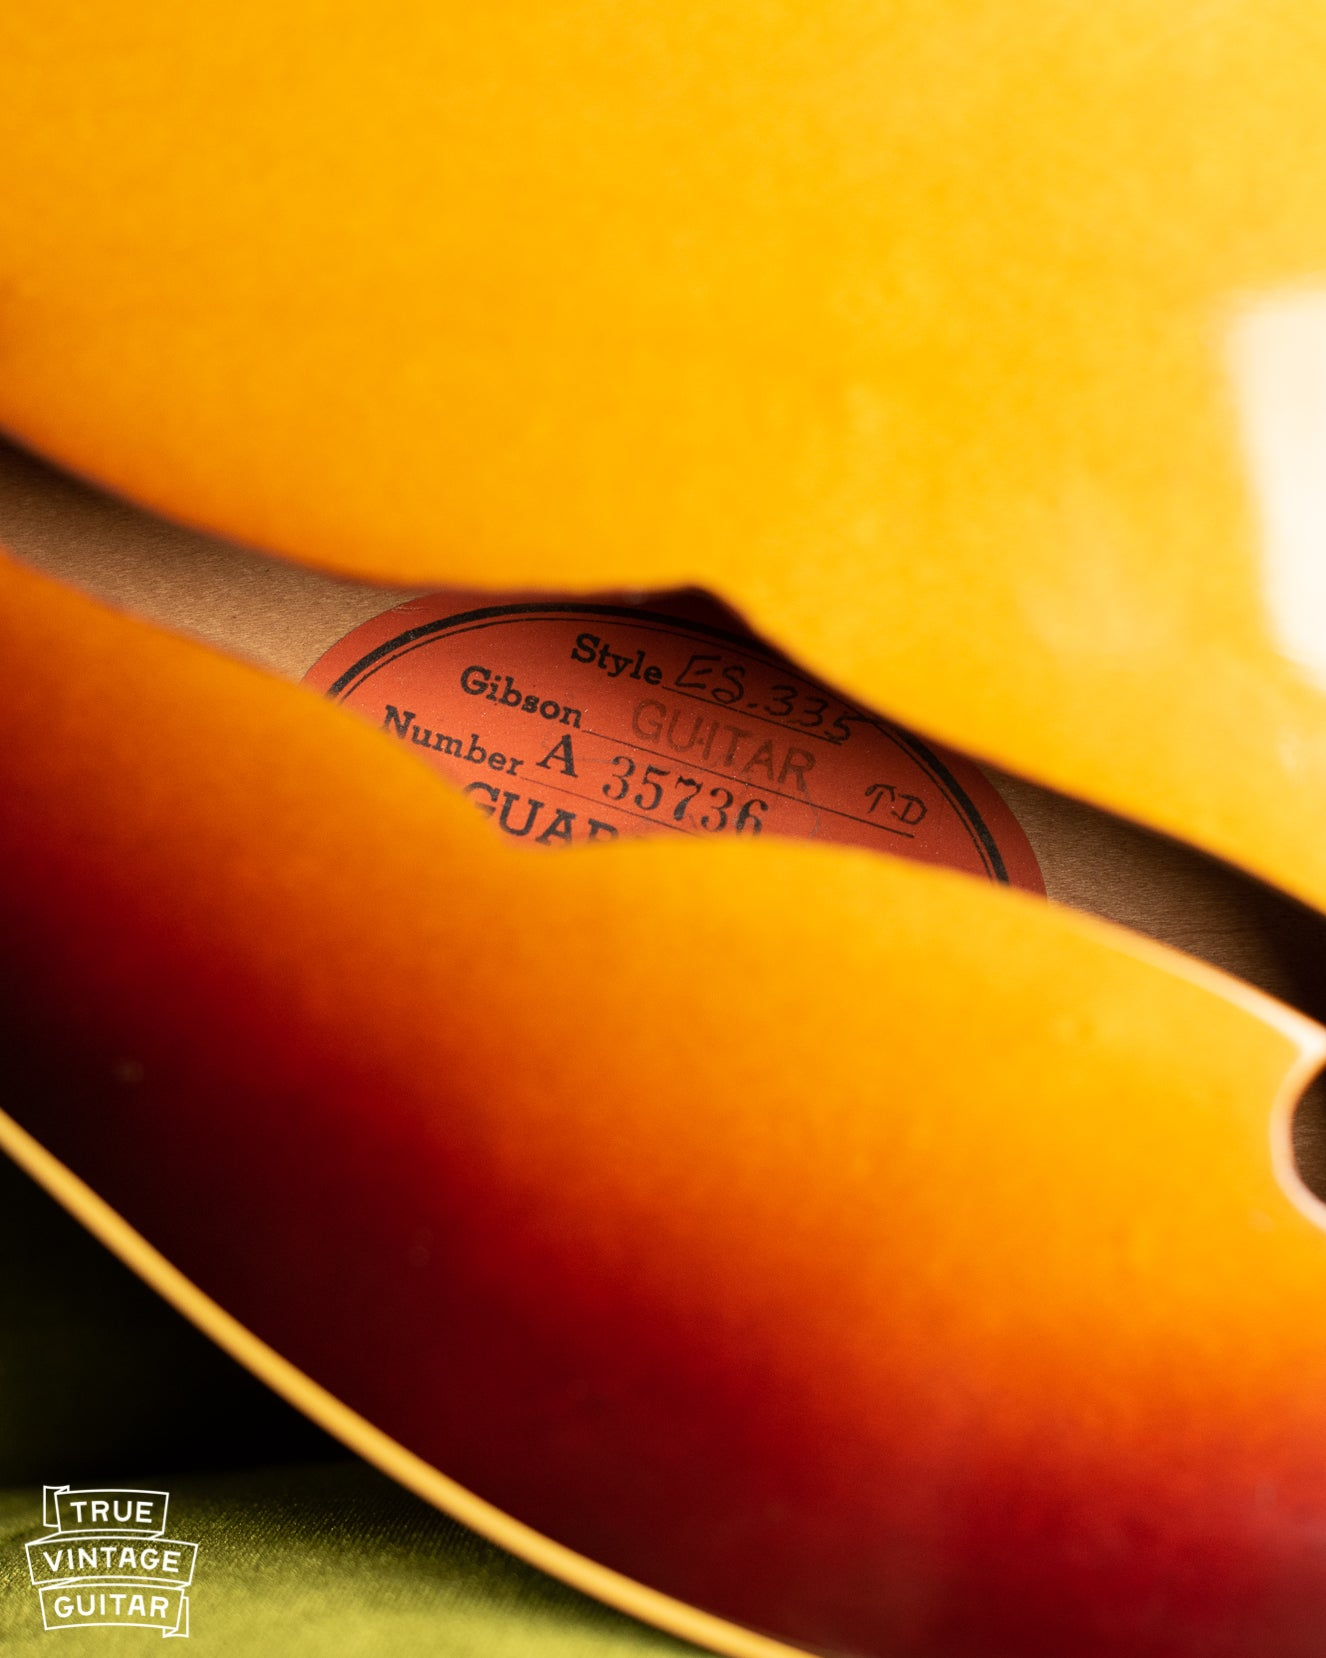 How to date a Gibson ES-335 with serial number